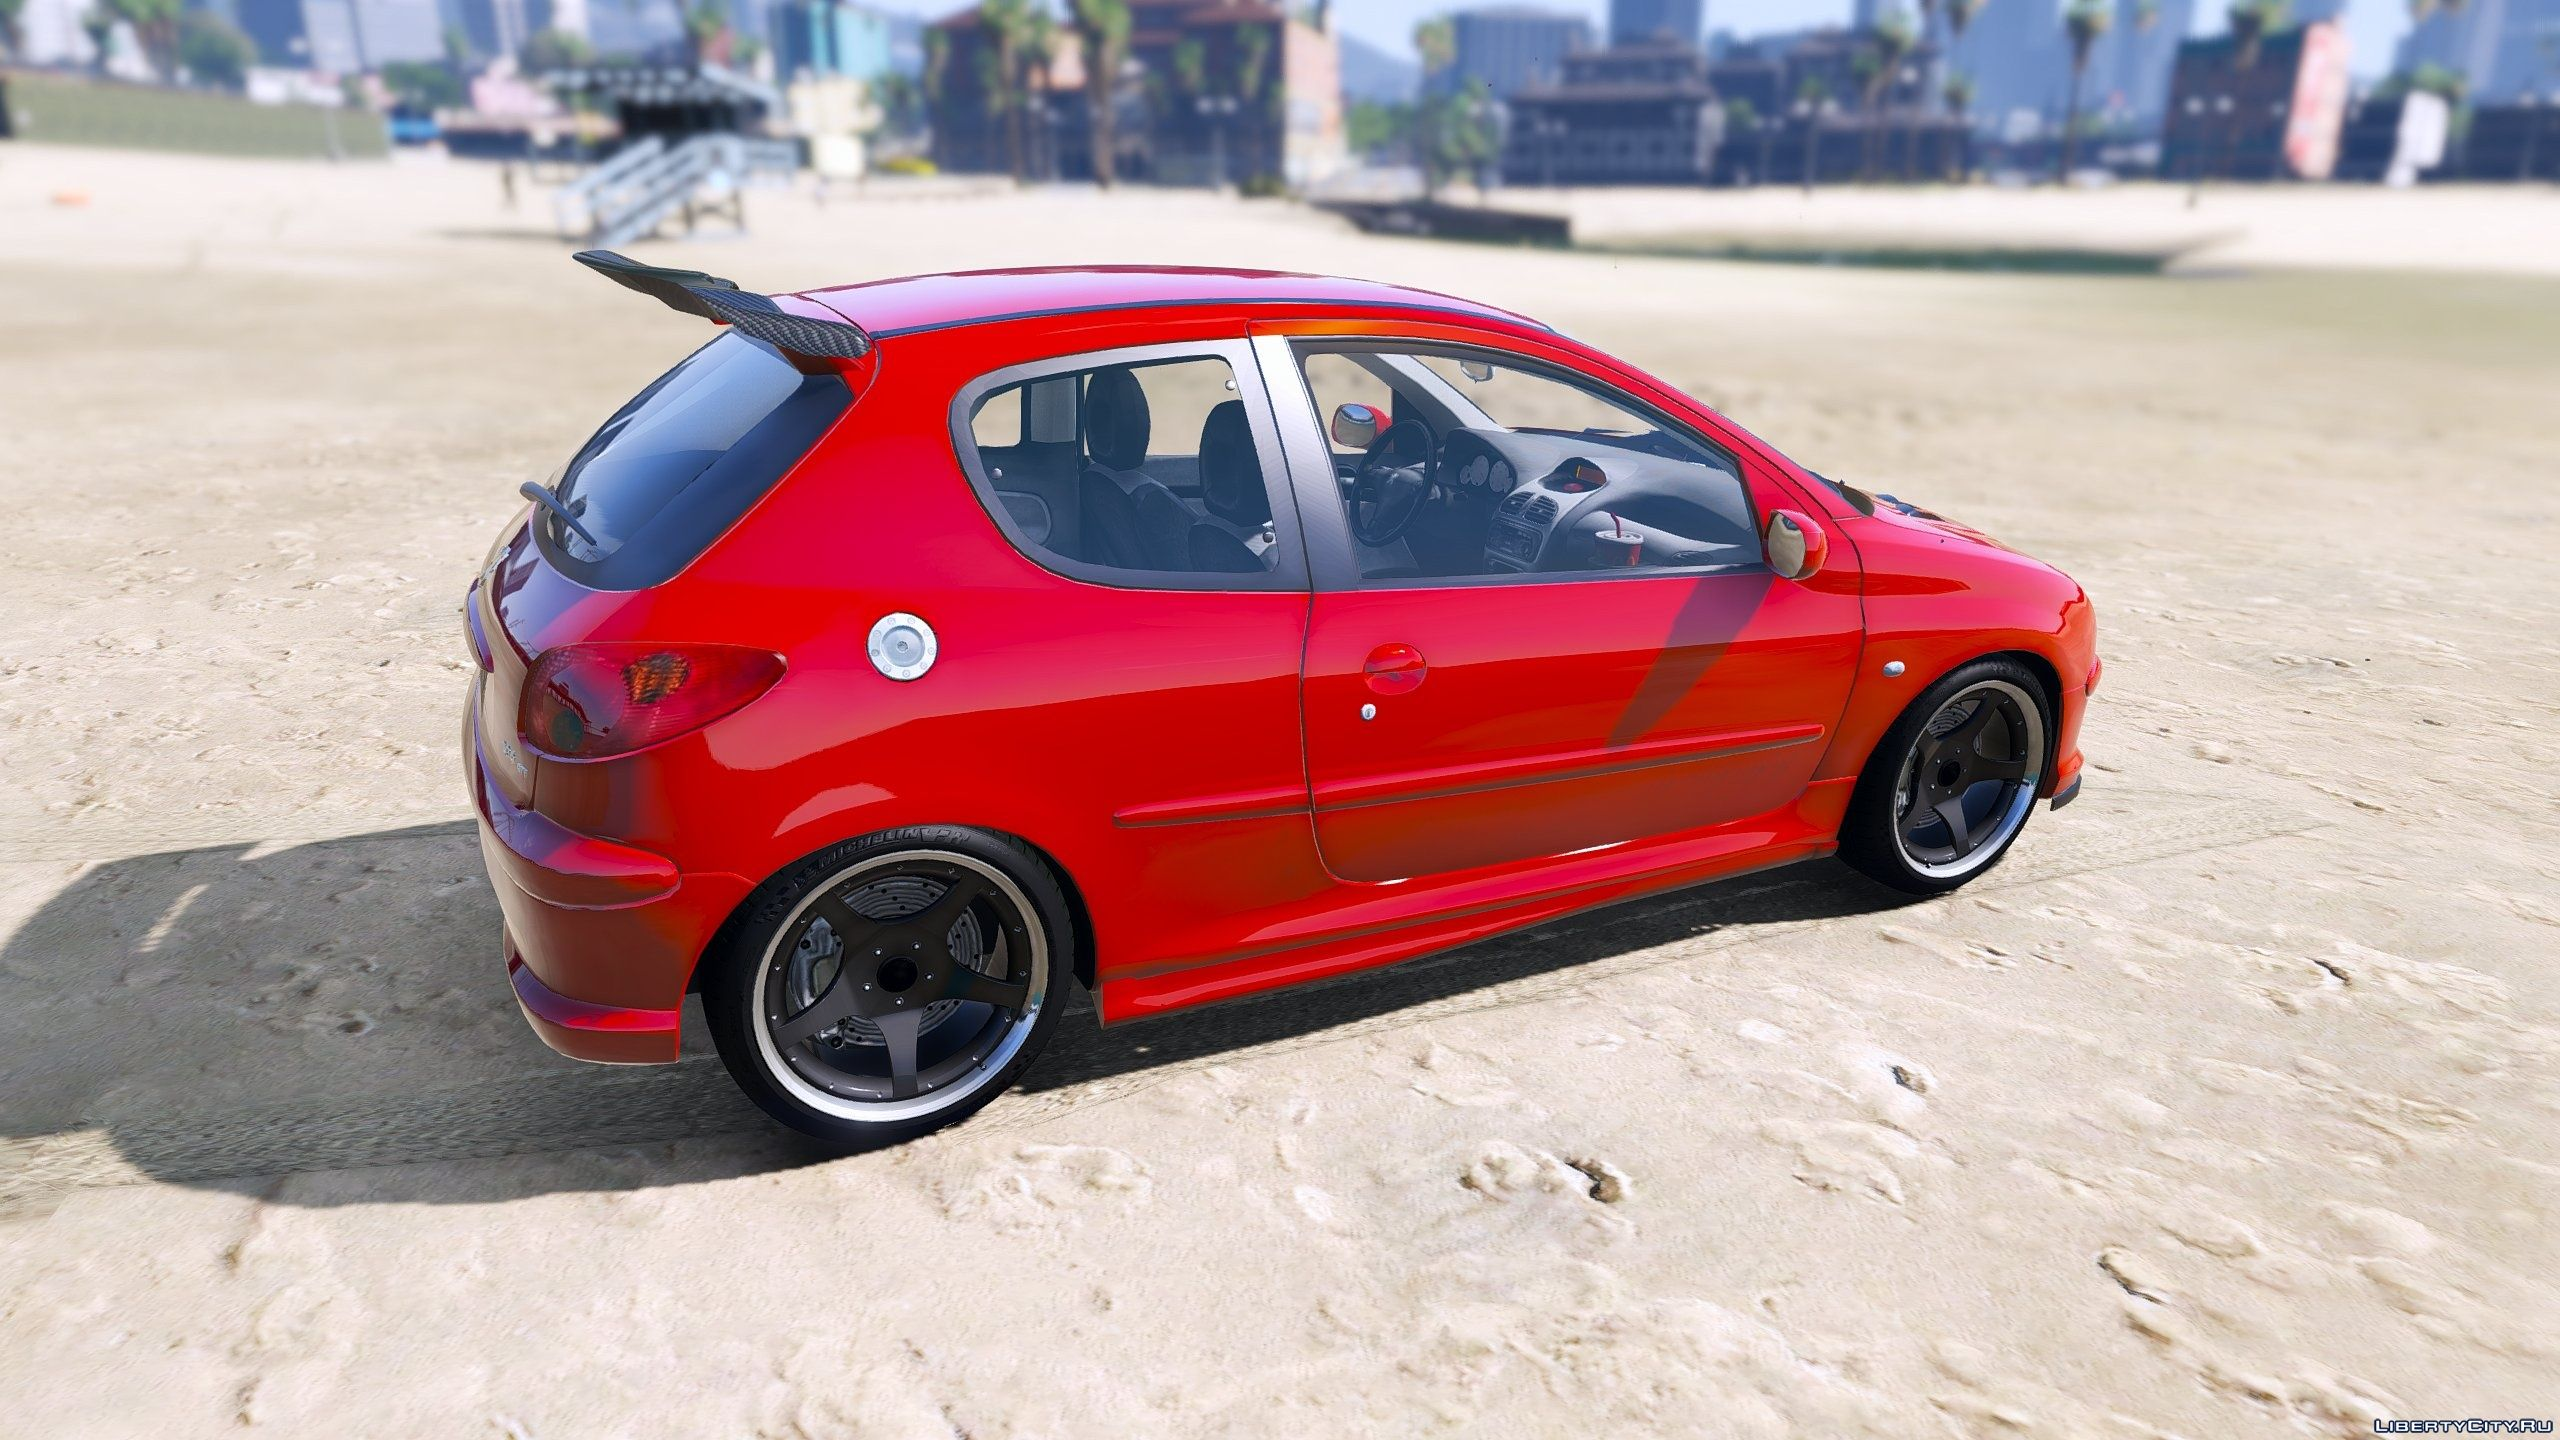 Peugeot 206 Gti Add On Tuning Oiv Final For Gta 5